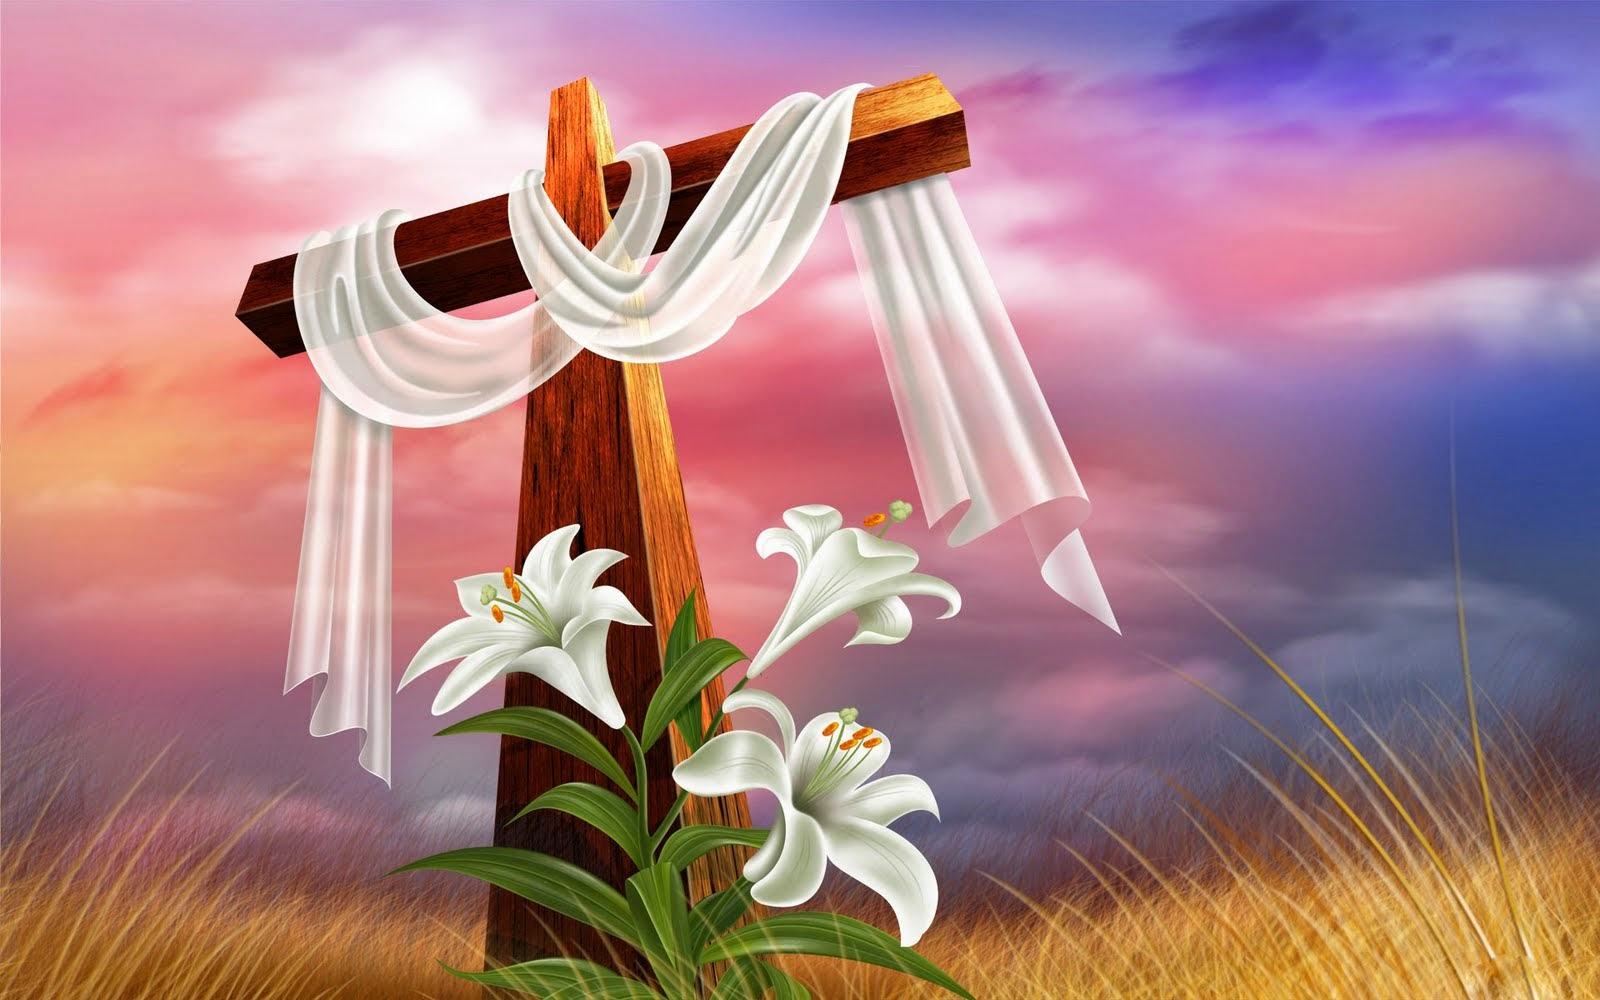 Good friday sms in Telugu, Good Friday 2014 message quotes text in Tamil with image picture wallpaper